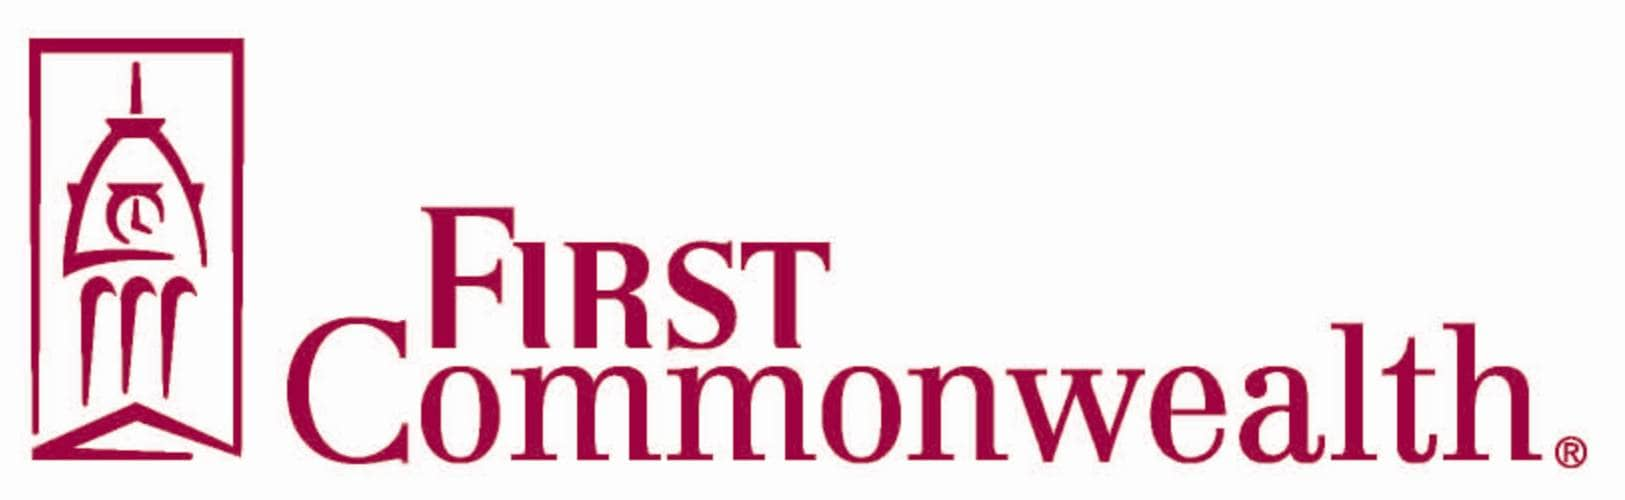 First Commonwealth